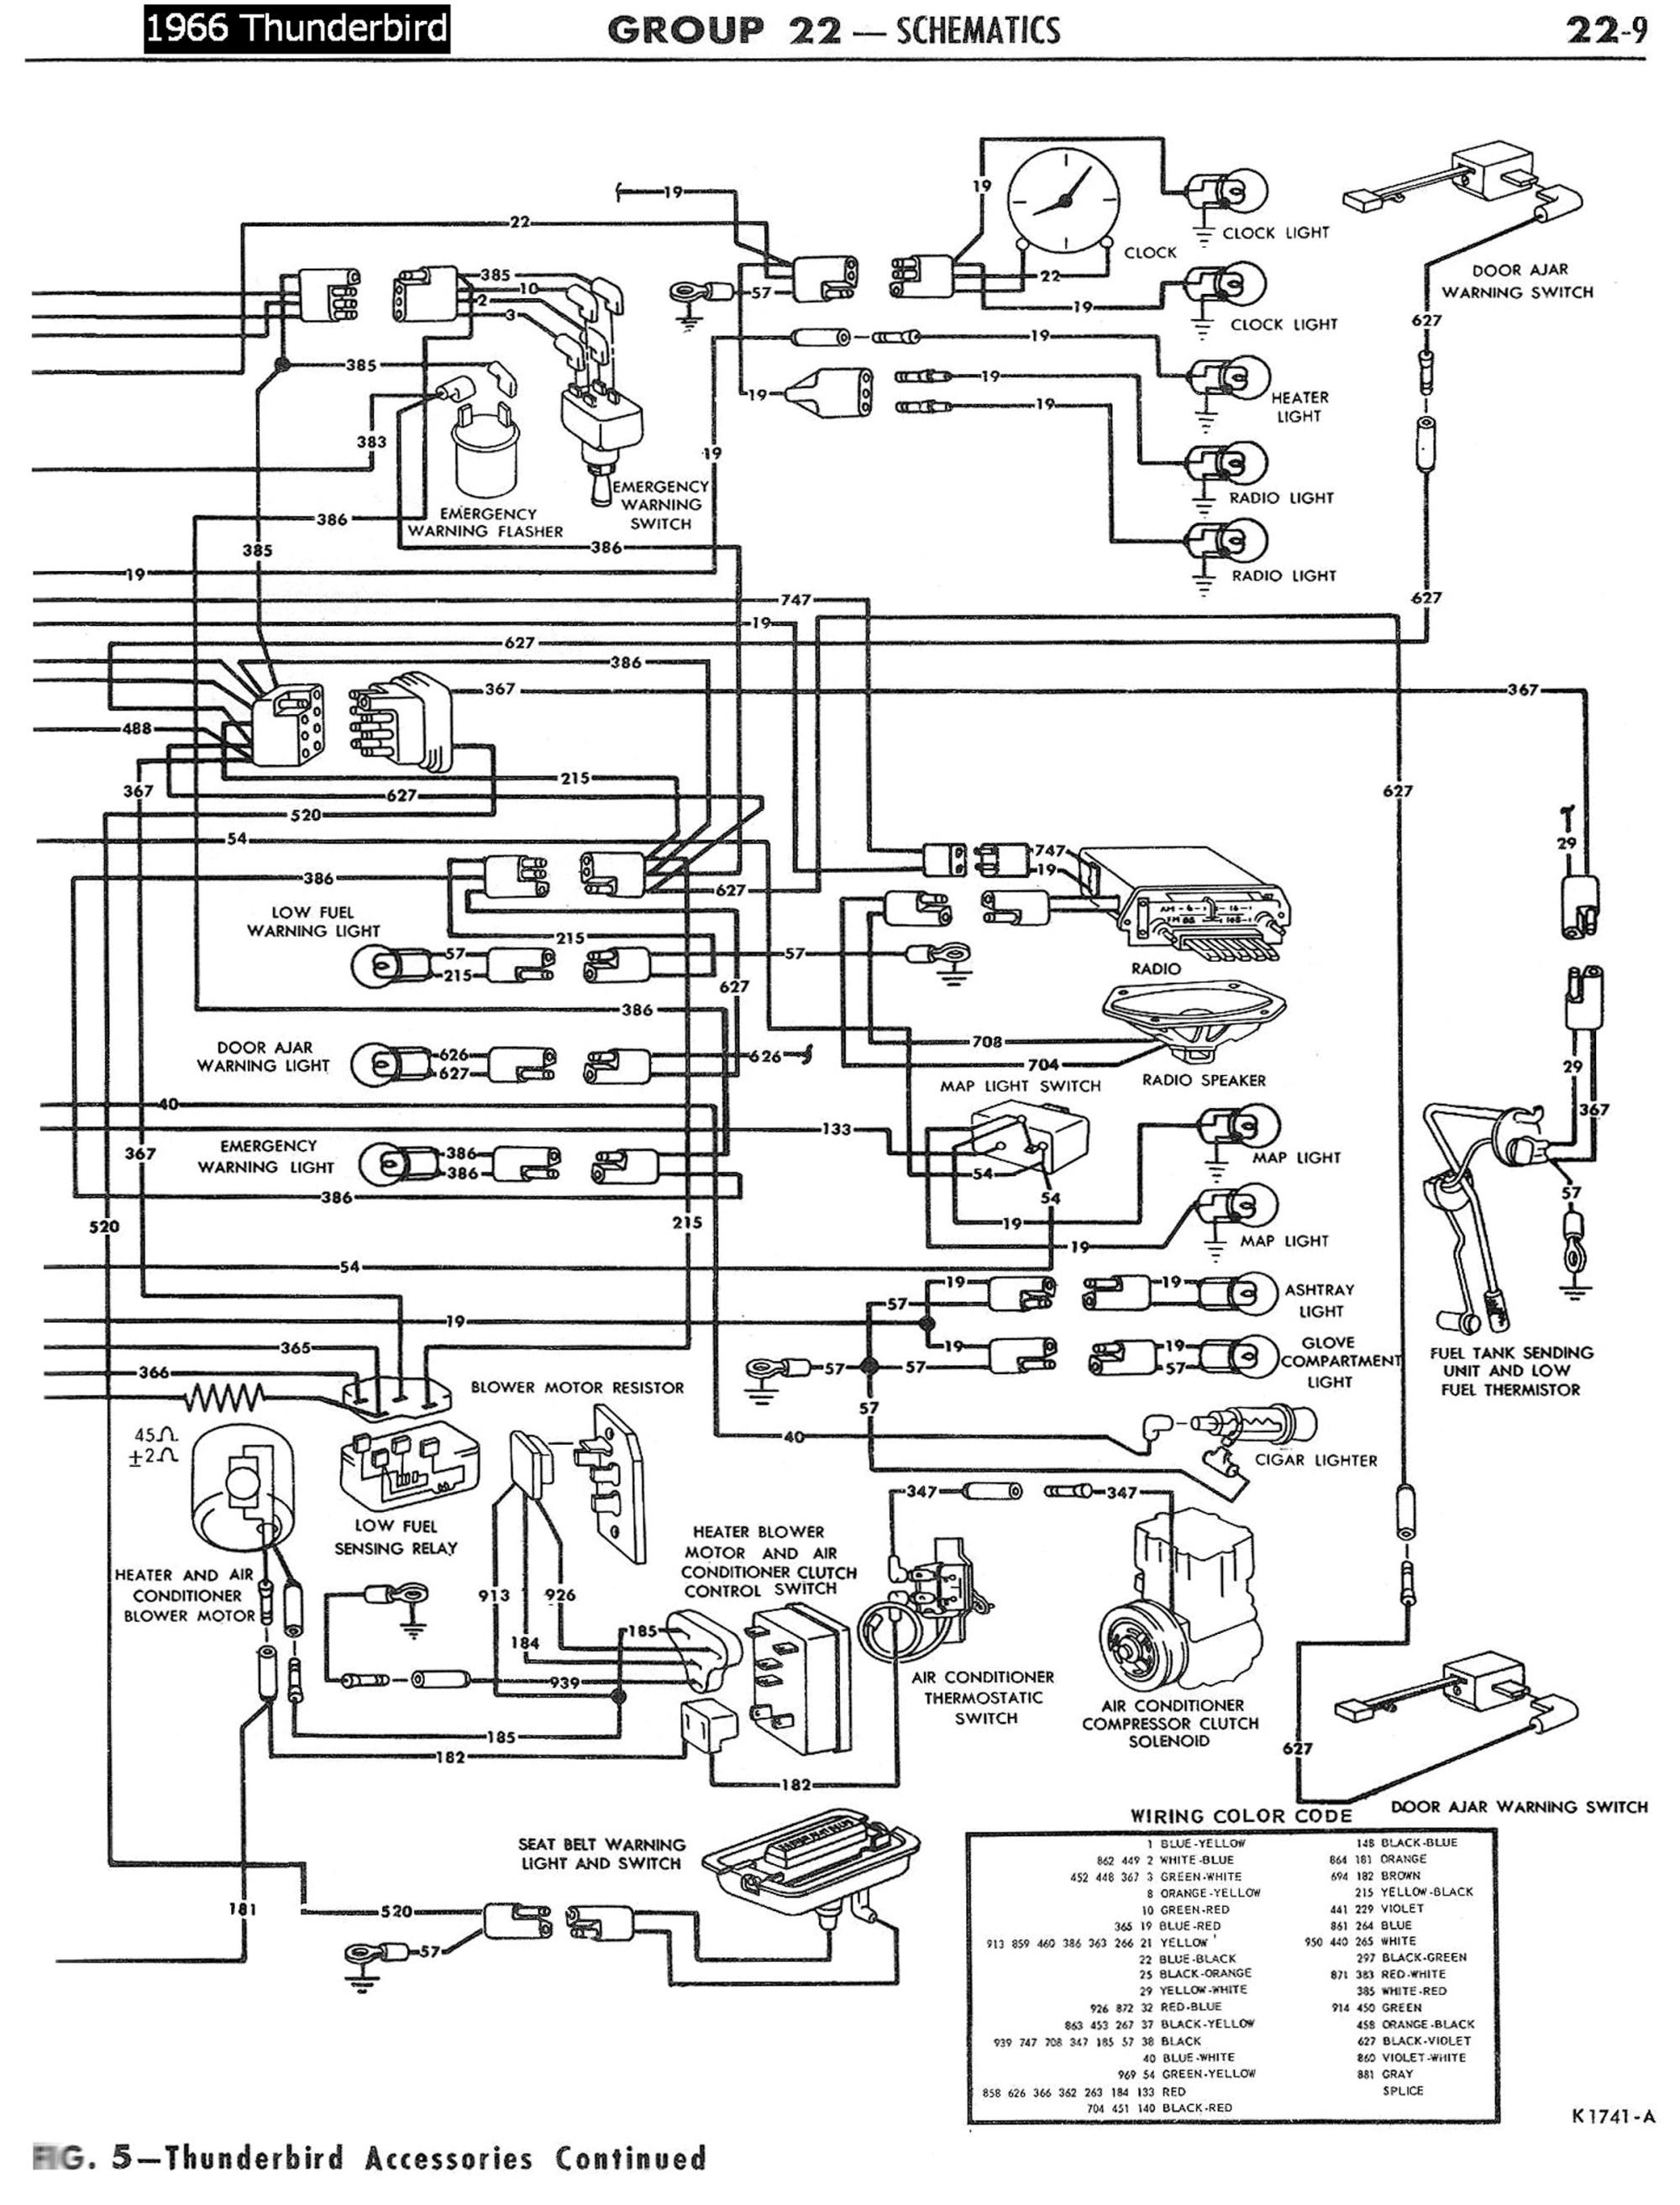 hight resolution of 1958 68 ford electrical schematics 1956 thunderbird wiring diagram 1966 thunderbird wiring diagram